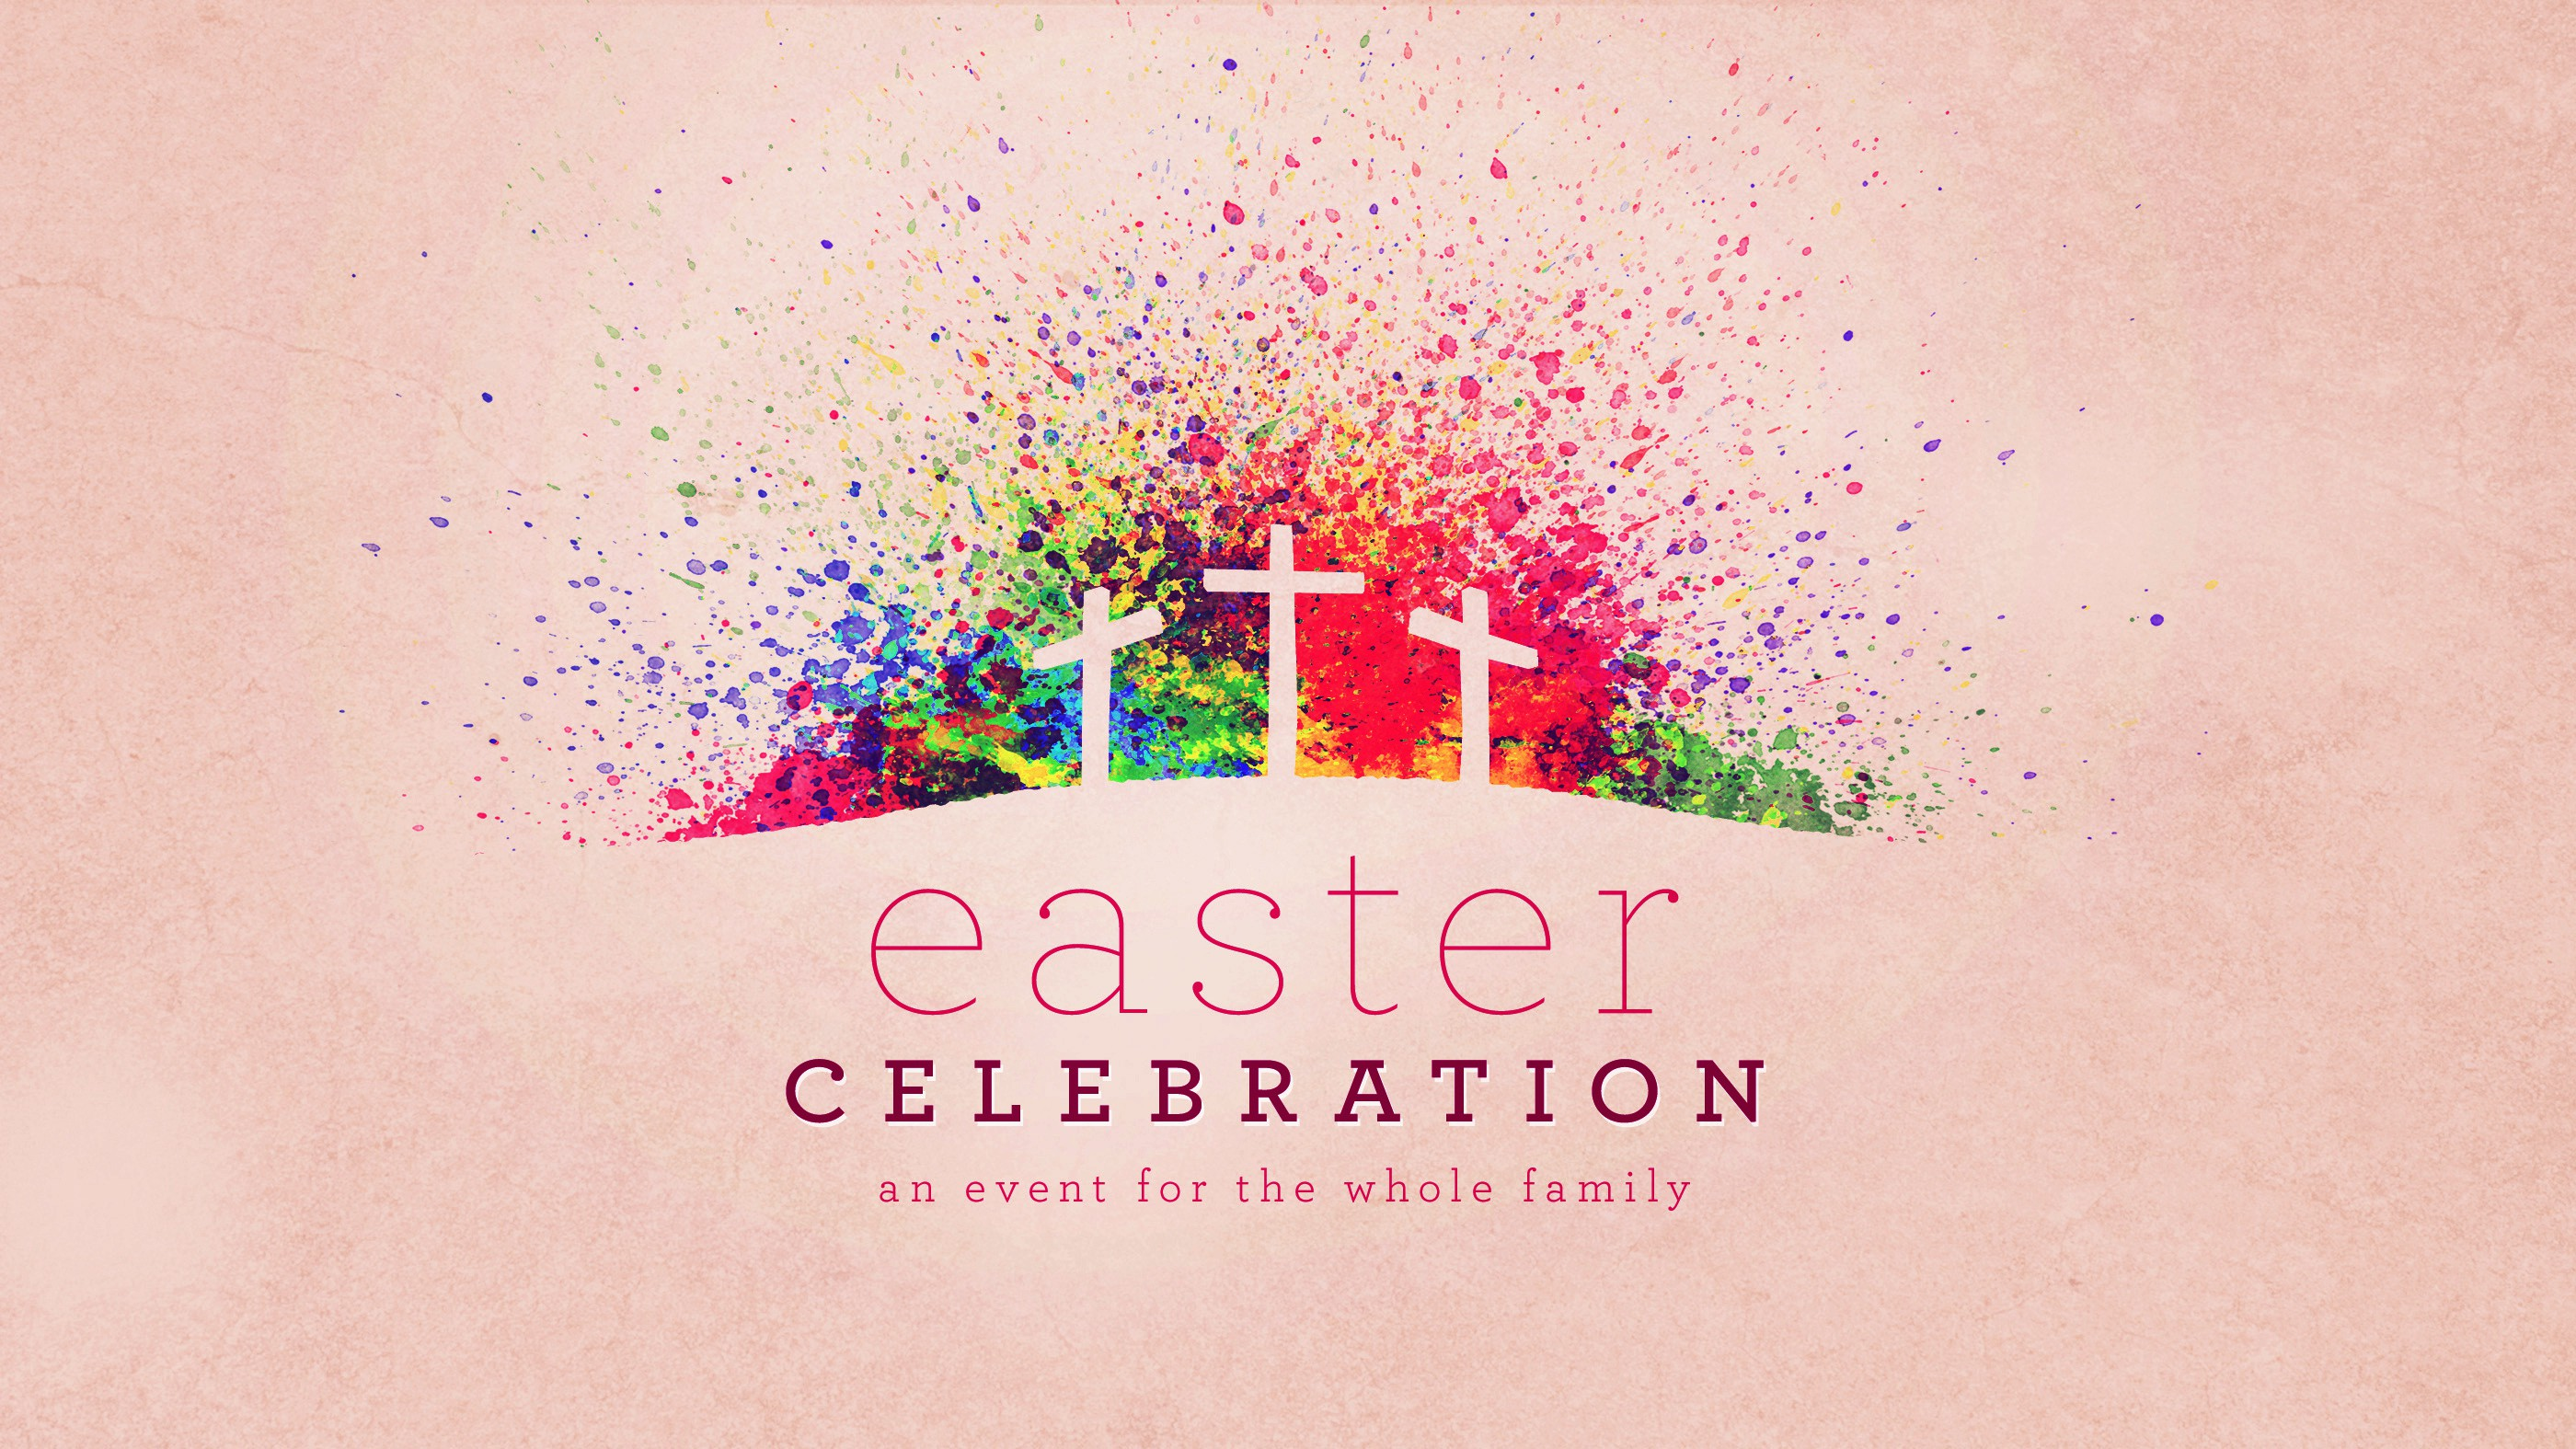 Easter Celebration 2018 Wallpapers   New HD Wallpapers 2800x1575